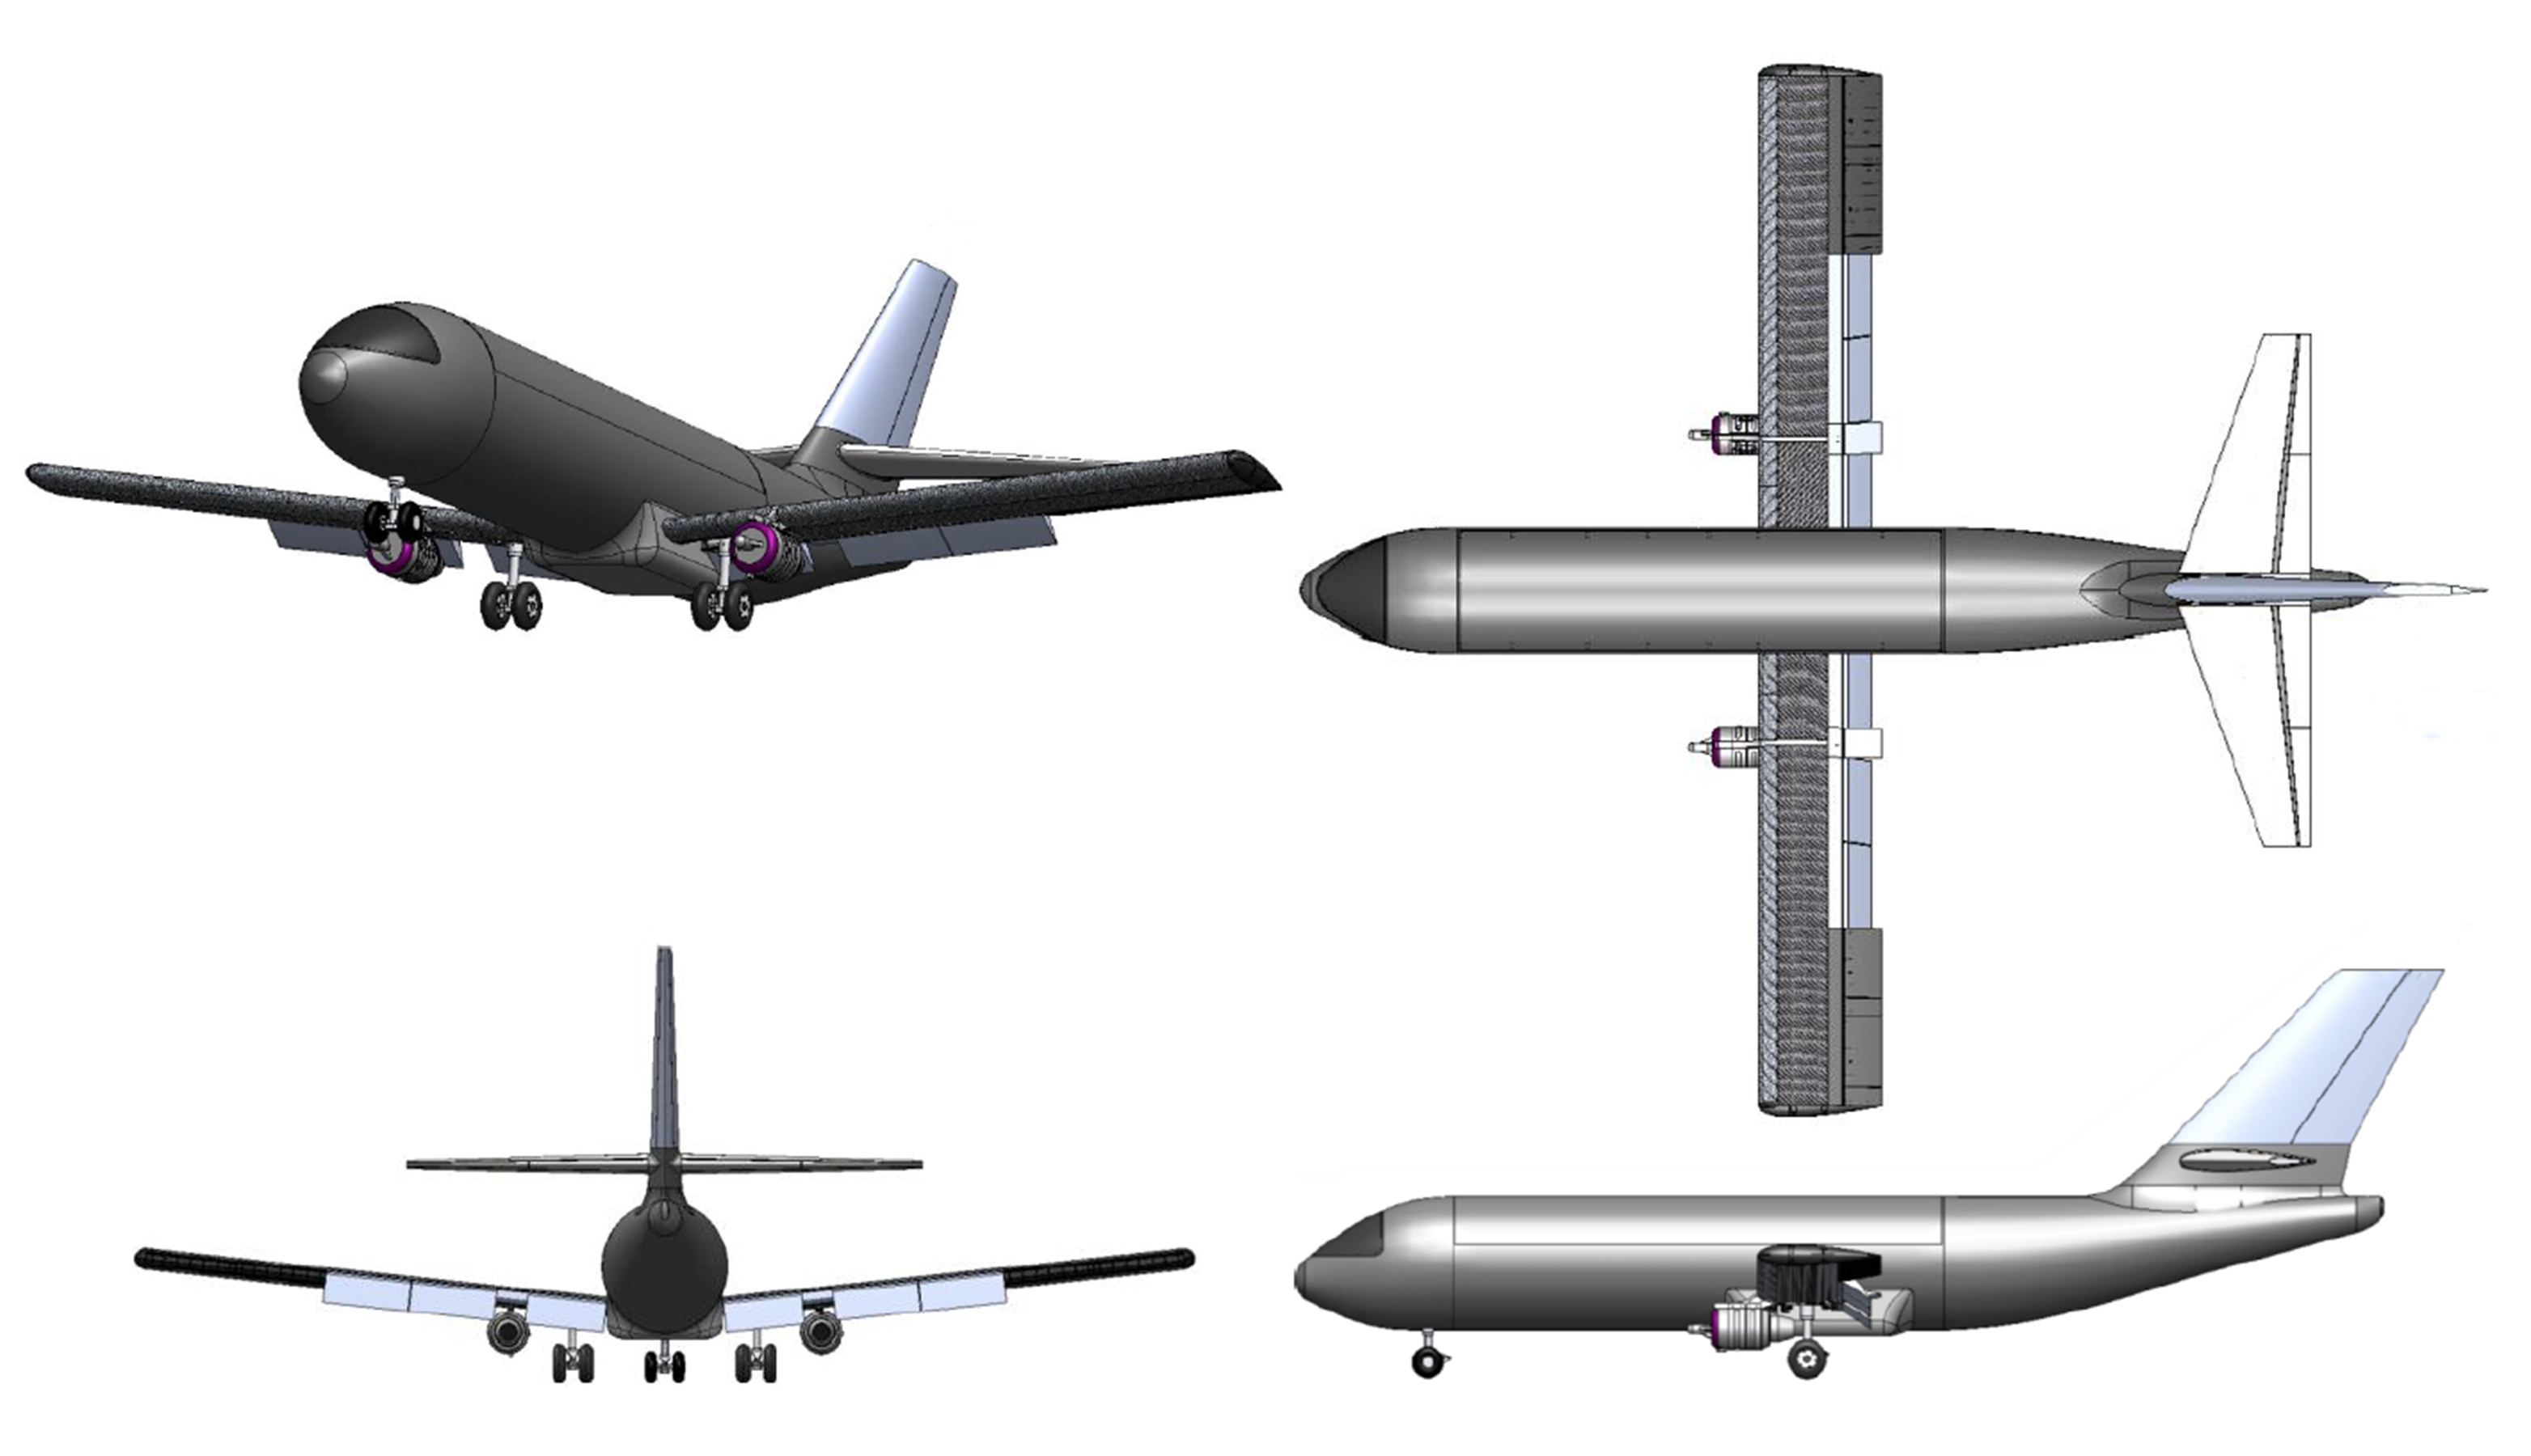 aerospace engineer research paper With so many new extensions in the fields associated with aerospace engineering, new research focuses arise, from multifunctional materials to wind energy.